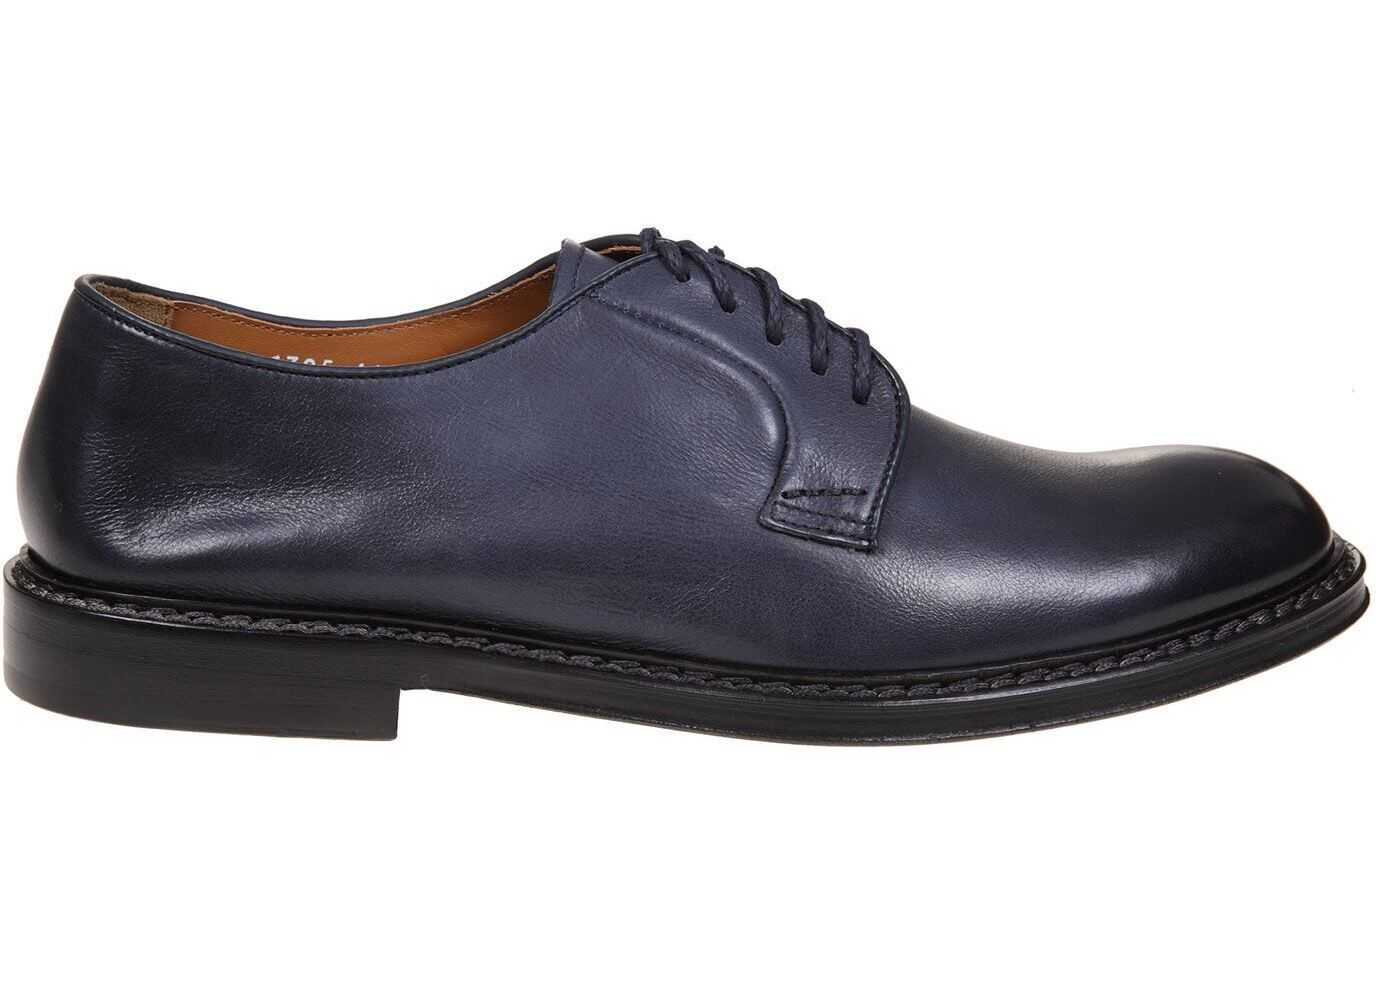 Doucal's Harley Derby Shoes In Blue DU1385PHOEUY196NB00 Blue imagine b-mall.ro